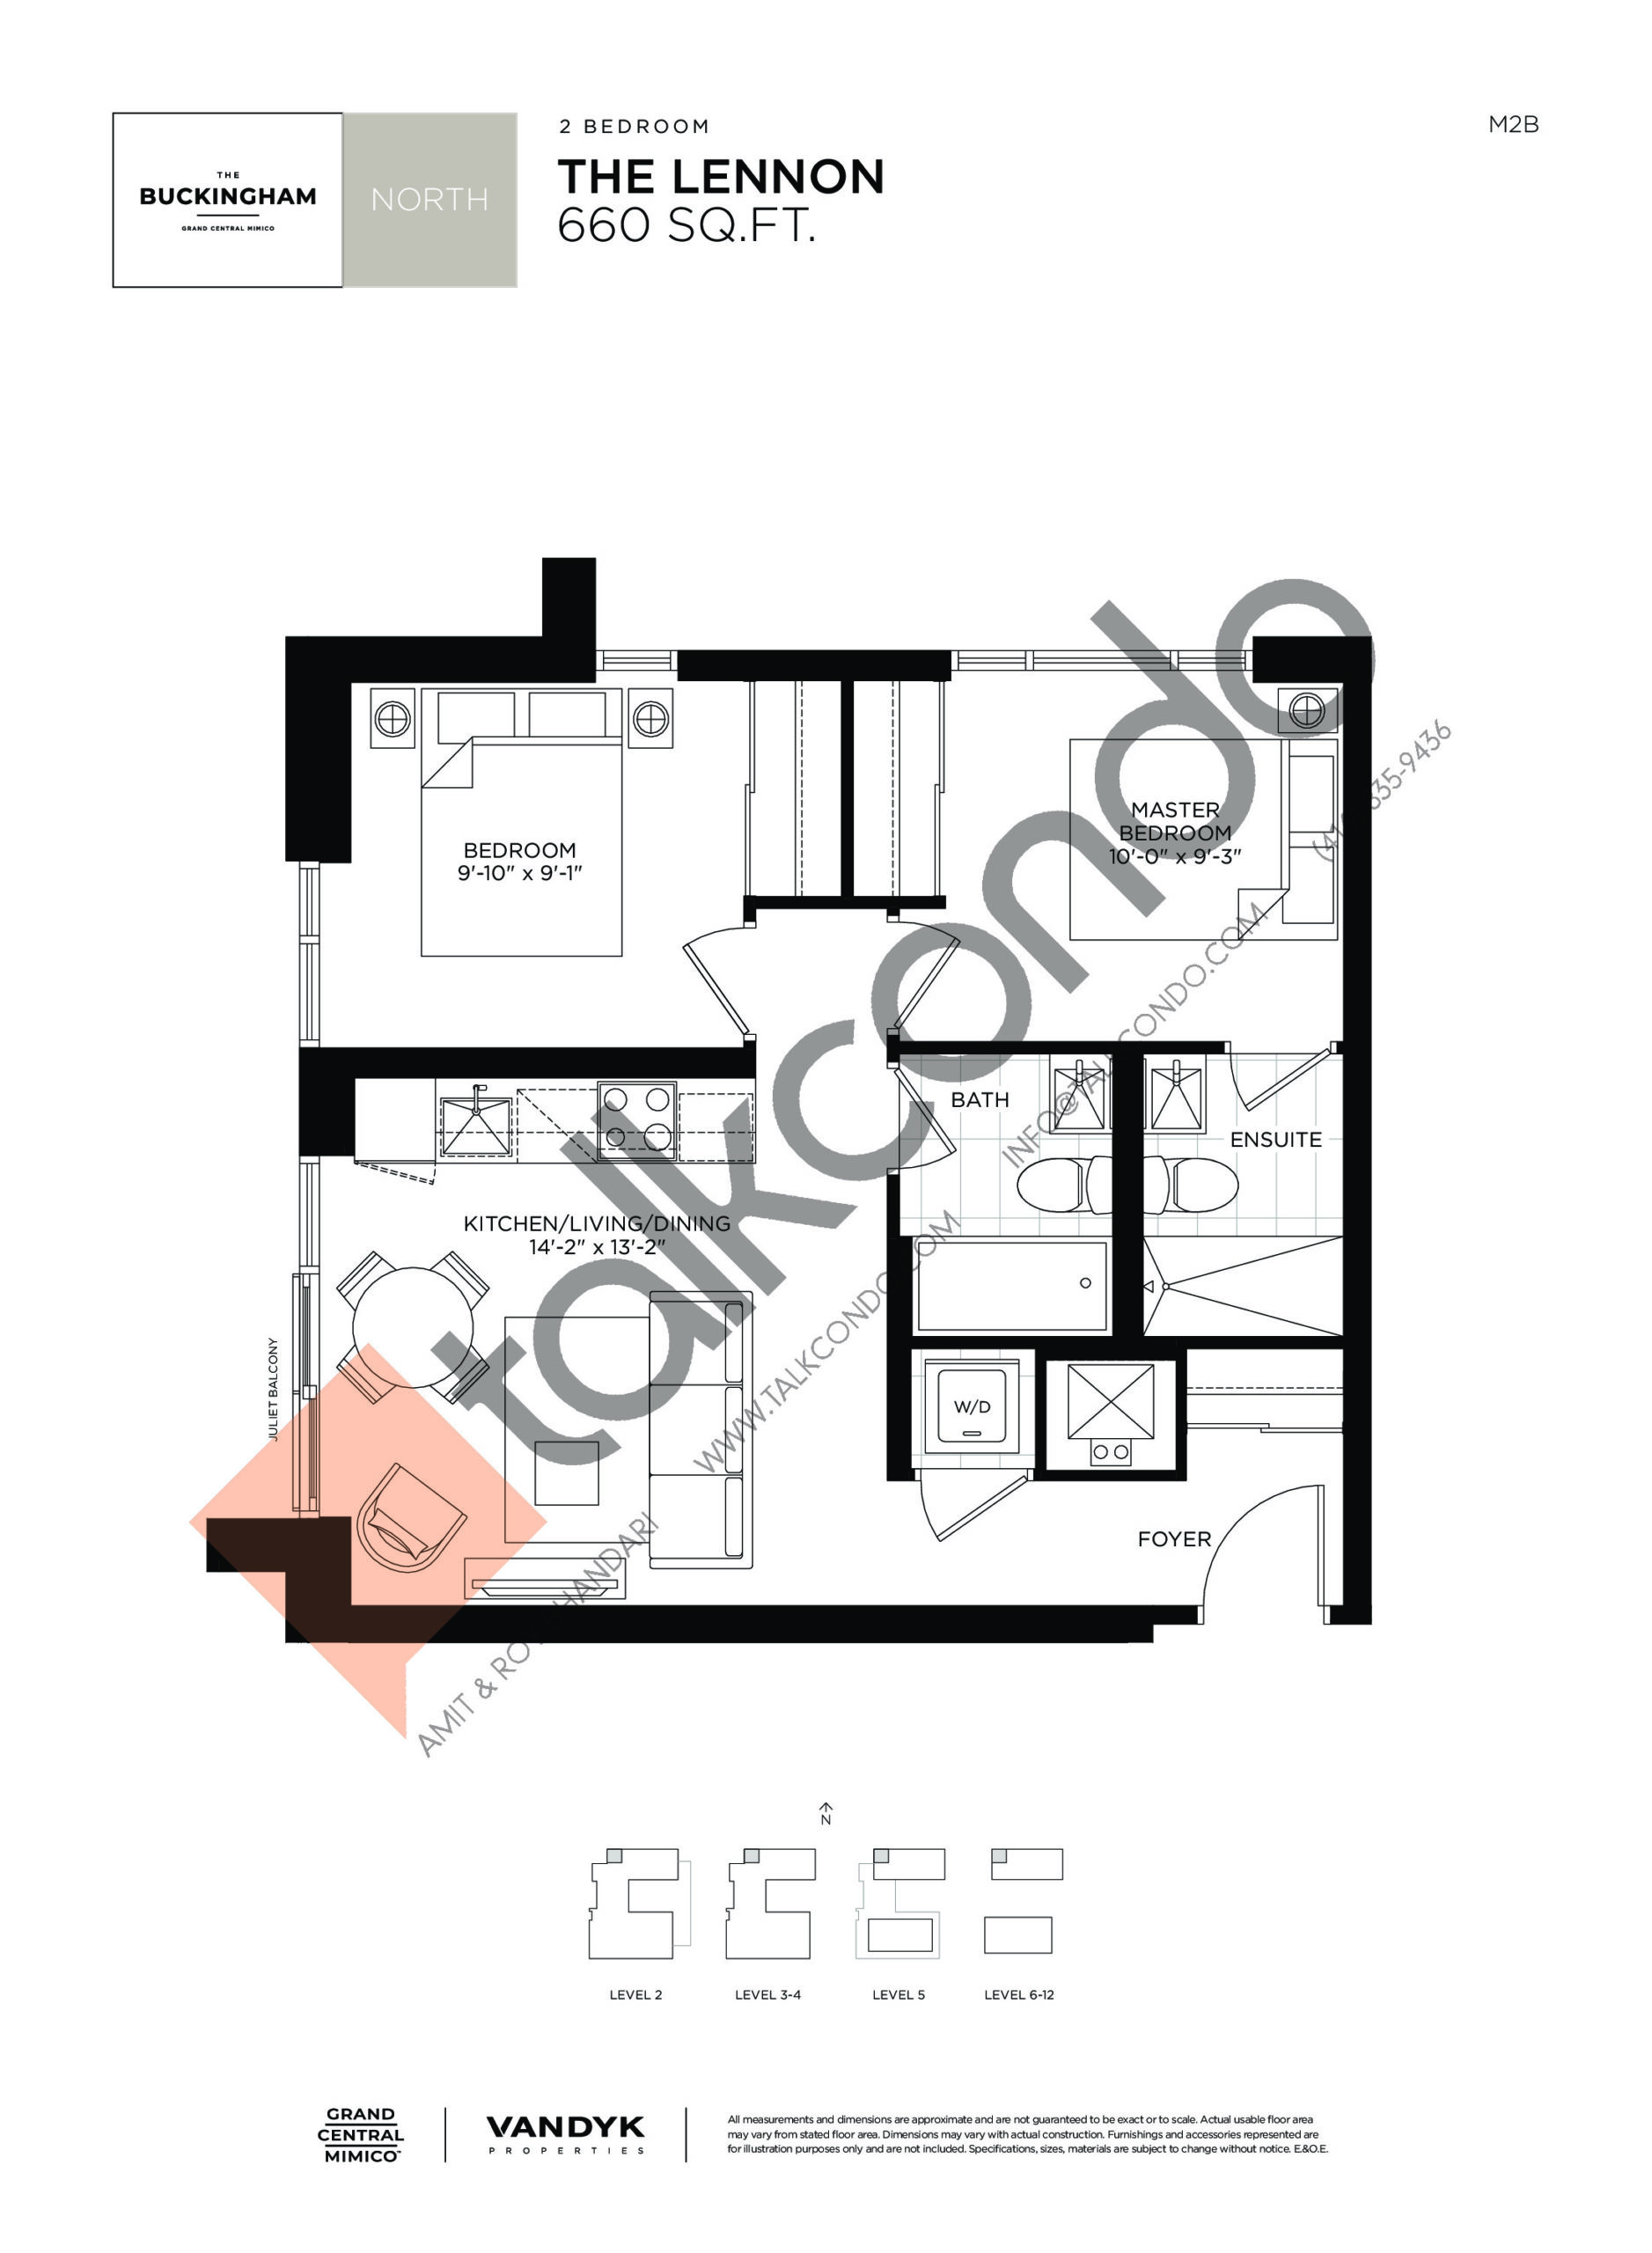 The Lennon Floor Plan at Grand Central Mimico Condos - 660 sq.ft